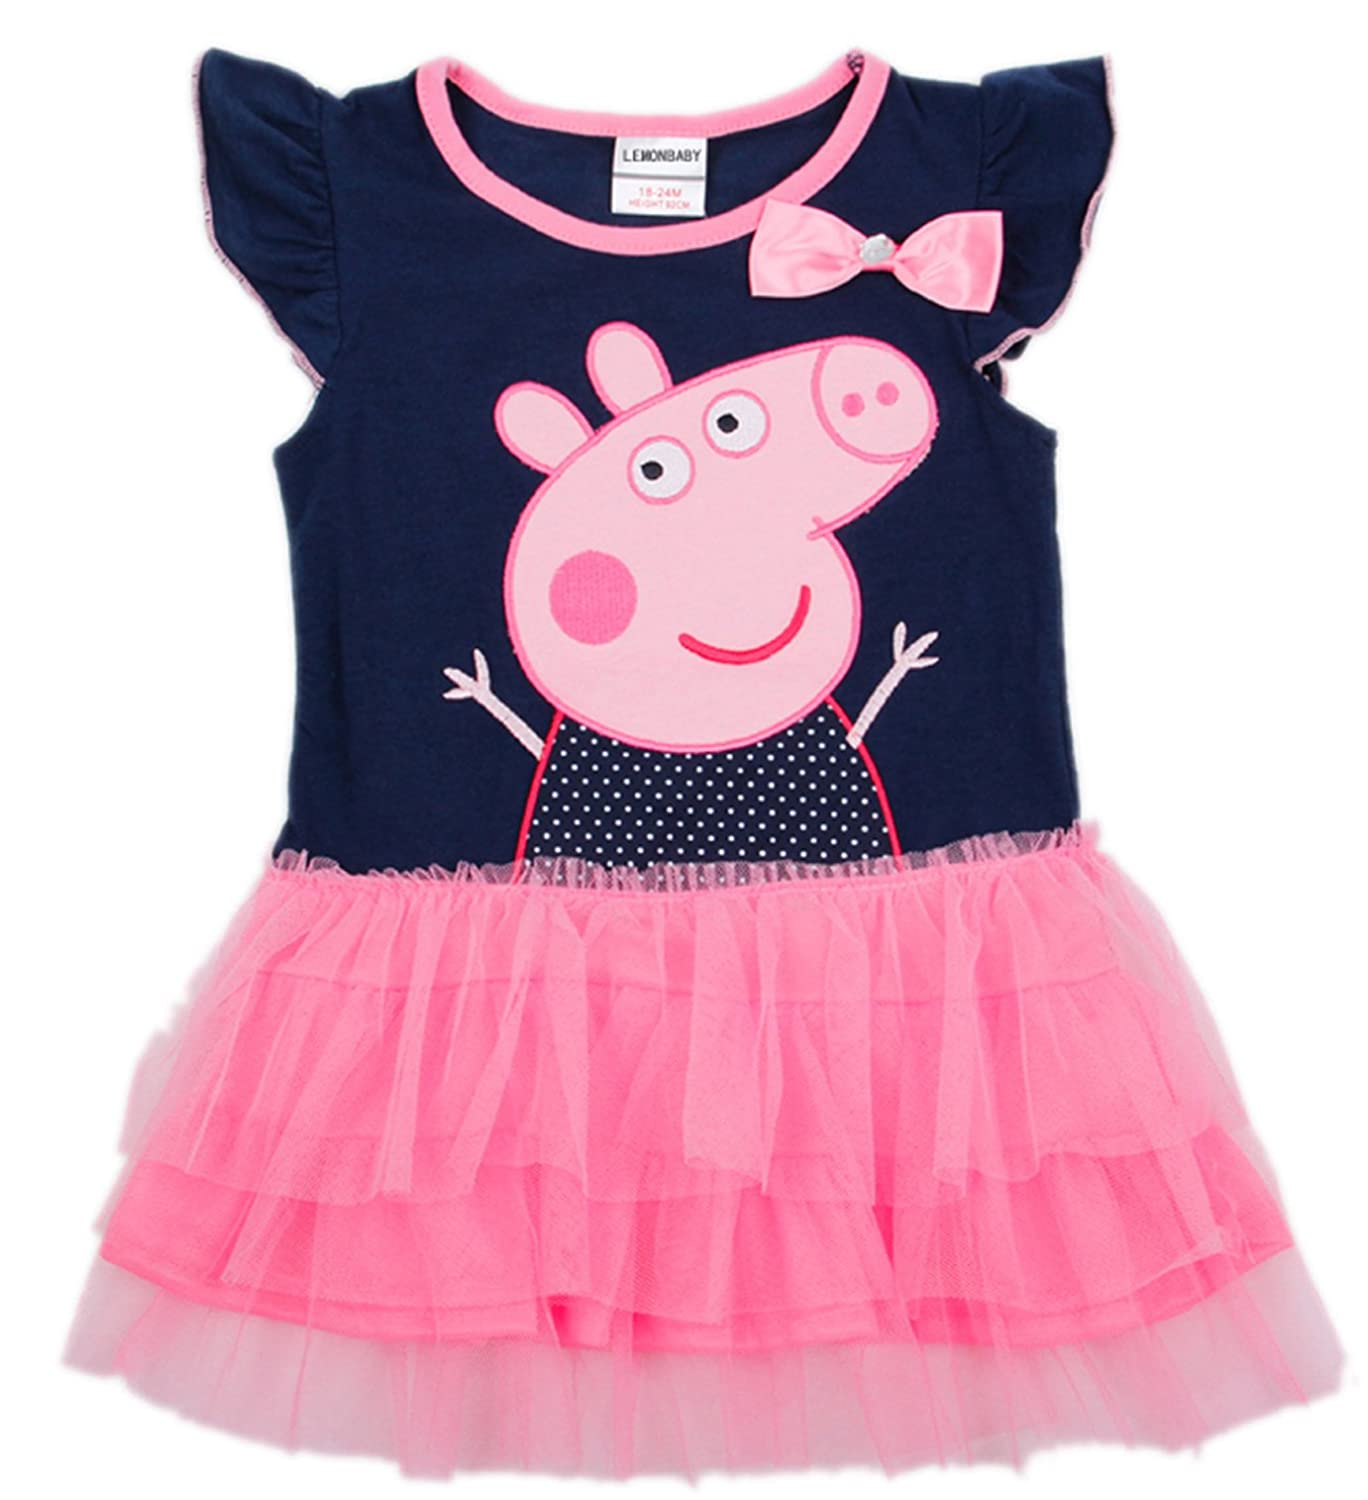 LEMONBABY Peppa Pig Girl's Dress Fashion Clothing Kids Cartoon Wear Child LMBY-0345